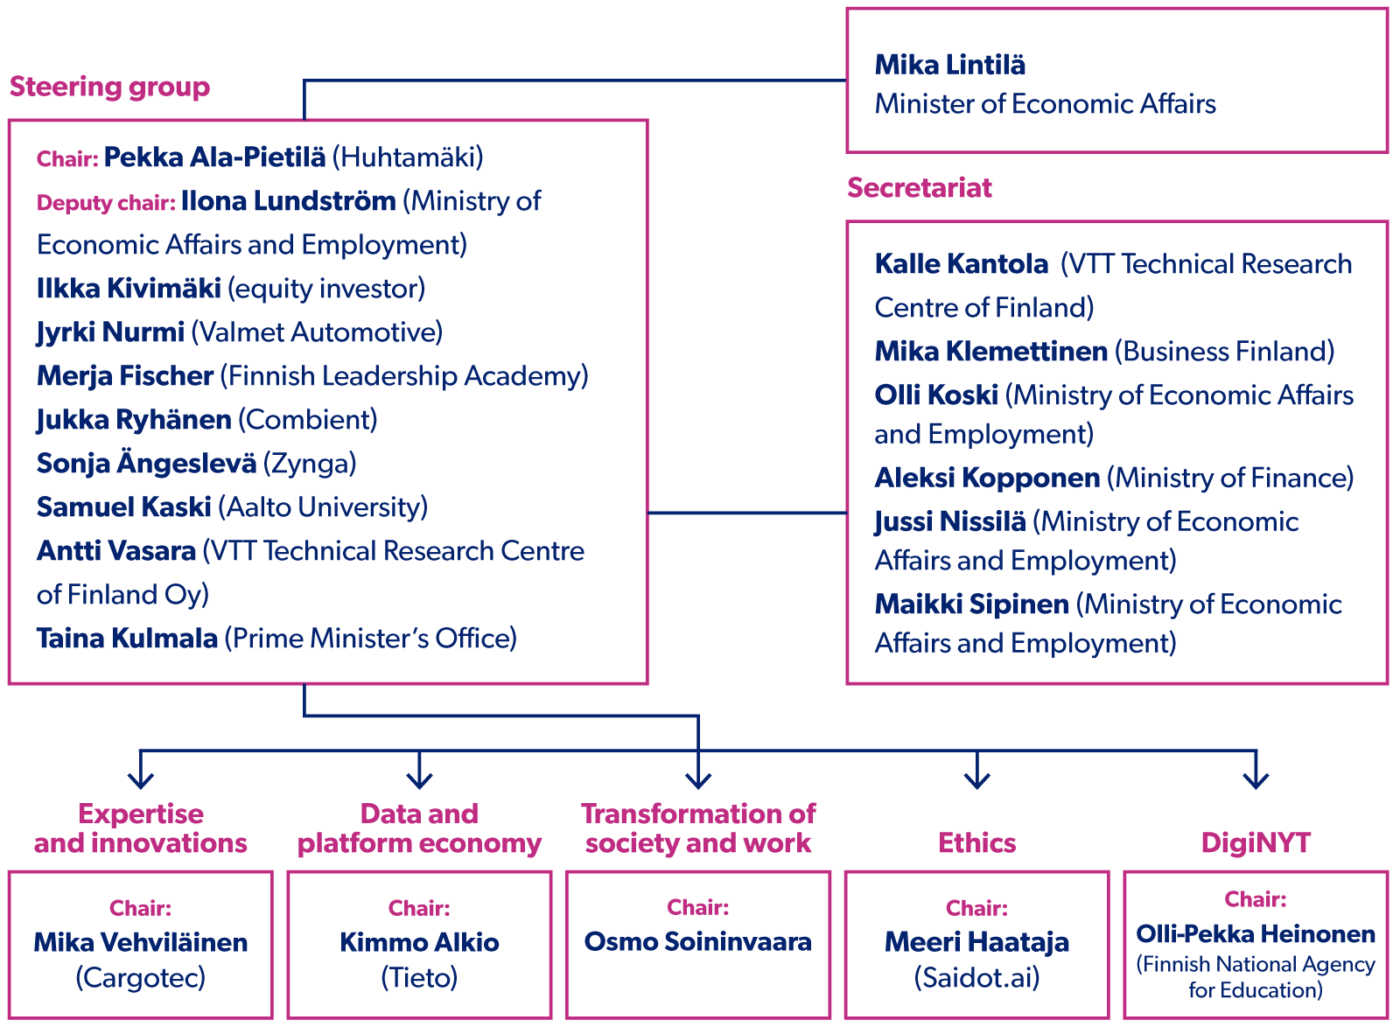 The organisation structure of the Artificial Intelligence Programme.